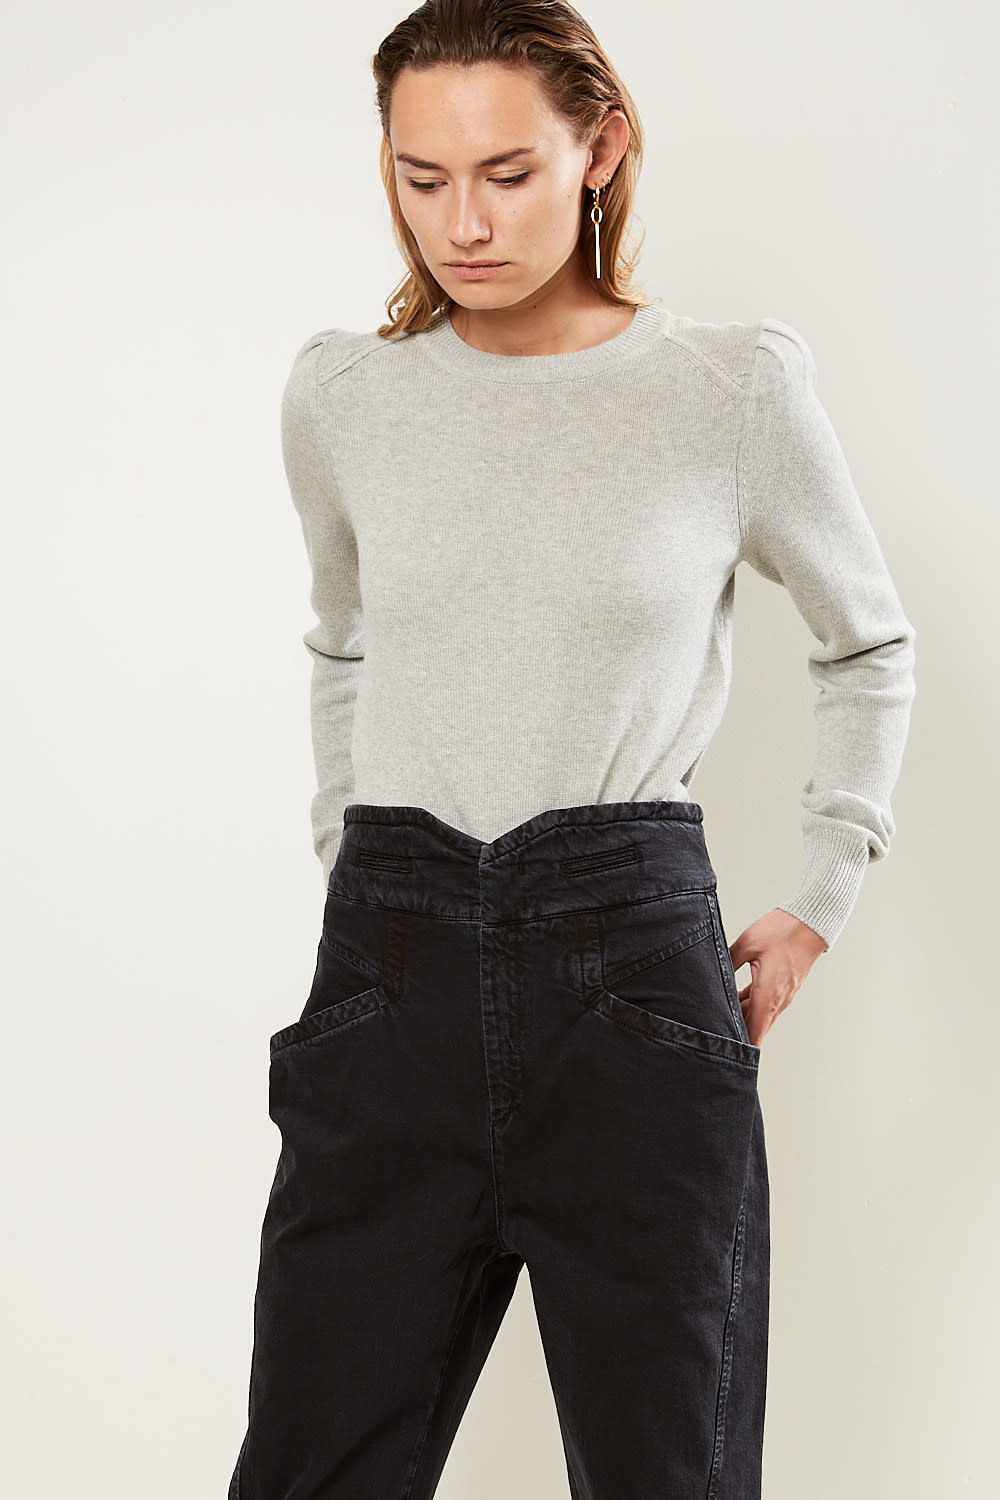 Etoile Isabel Marant - Kleely regular knit sweater